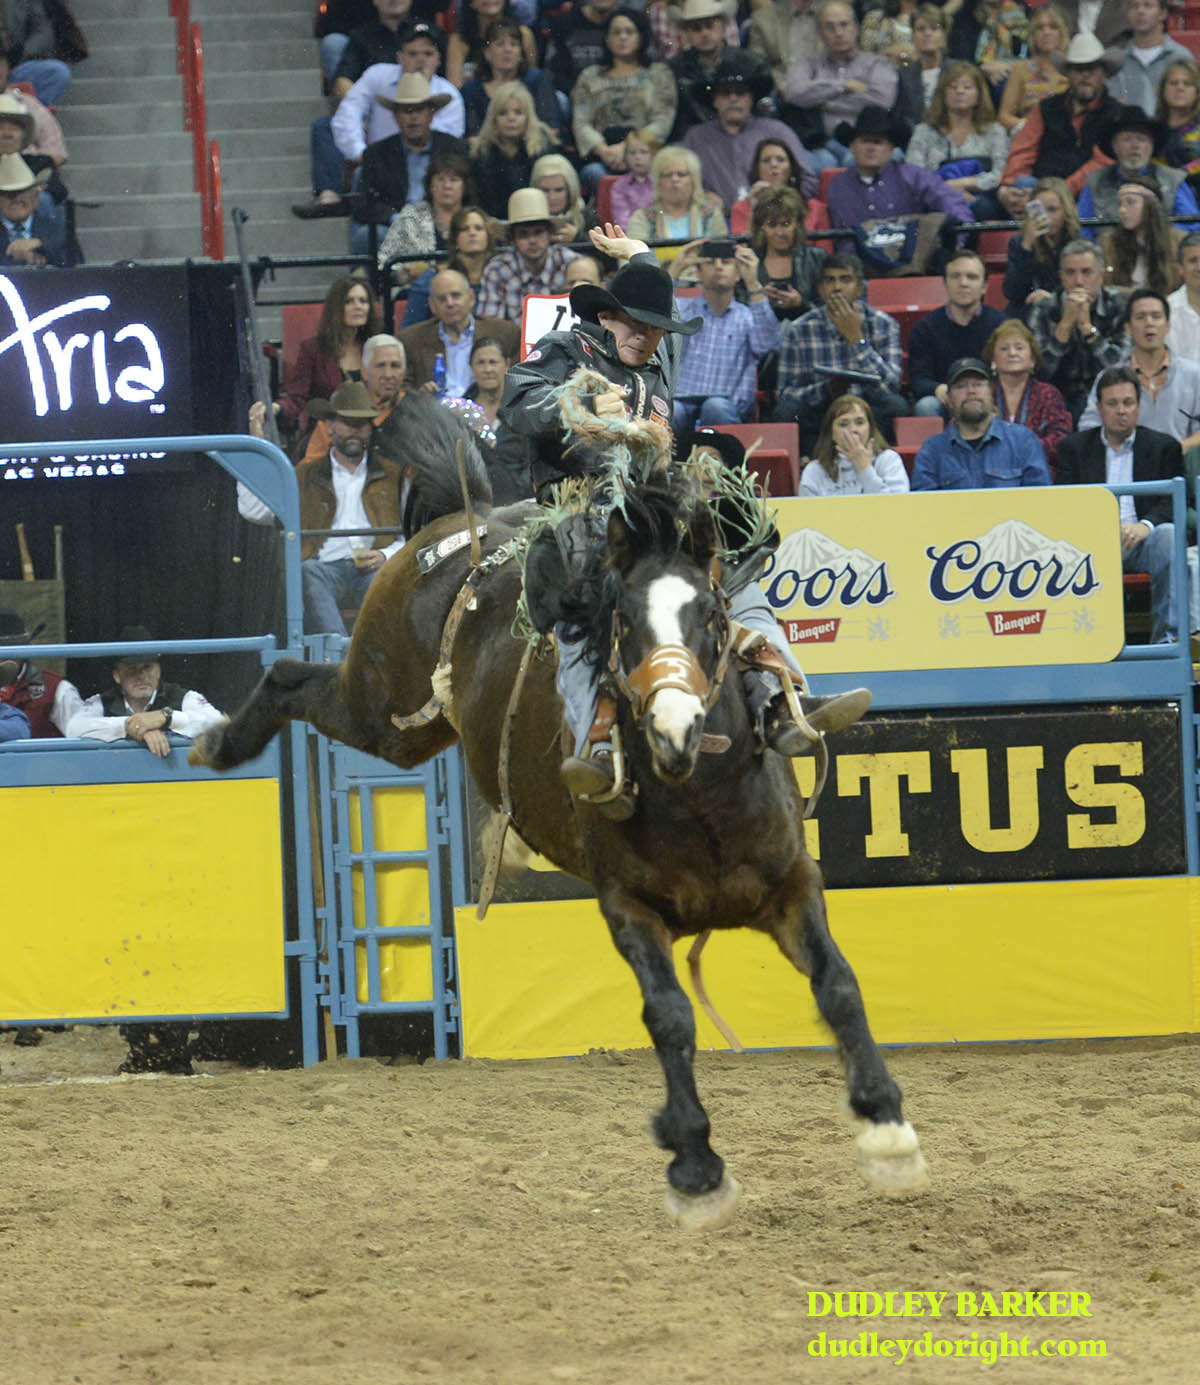 Jacobs Crawley won the second go-round Friday night and is second in the average through two performances at the Wrangler National Finals Rodel. || Photo by DUDLEY BARKER, dudleydoright.com